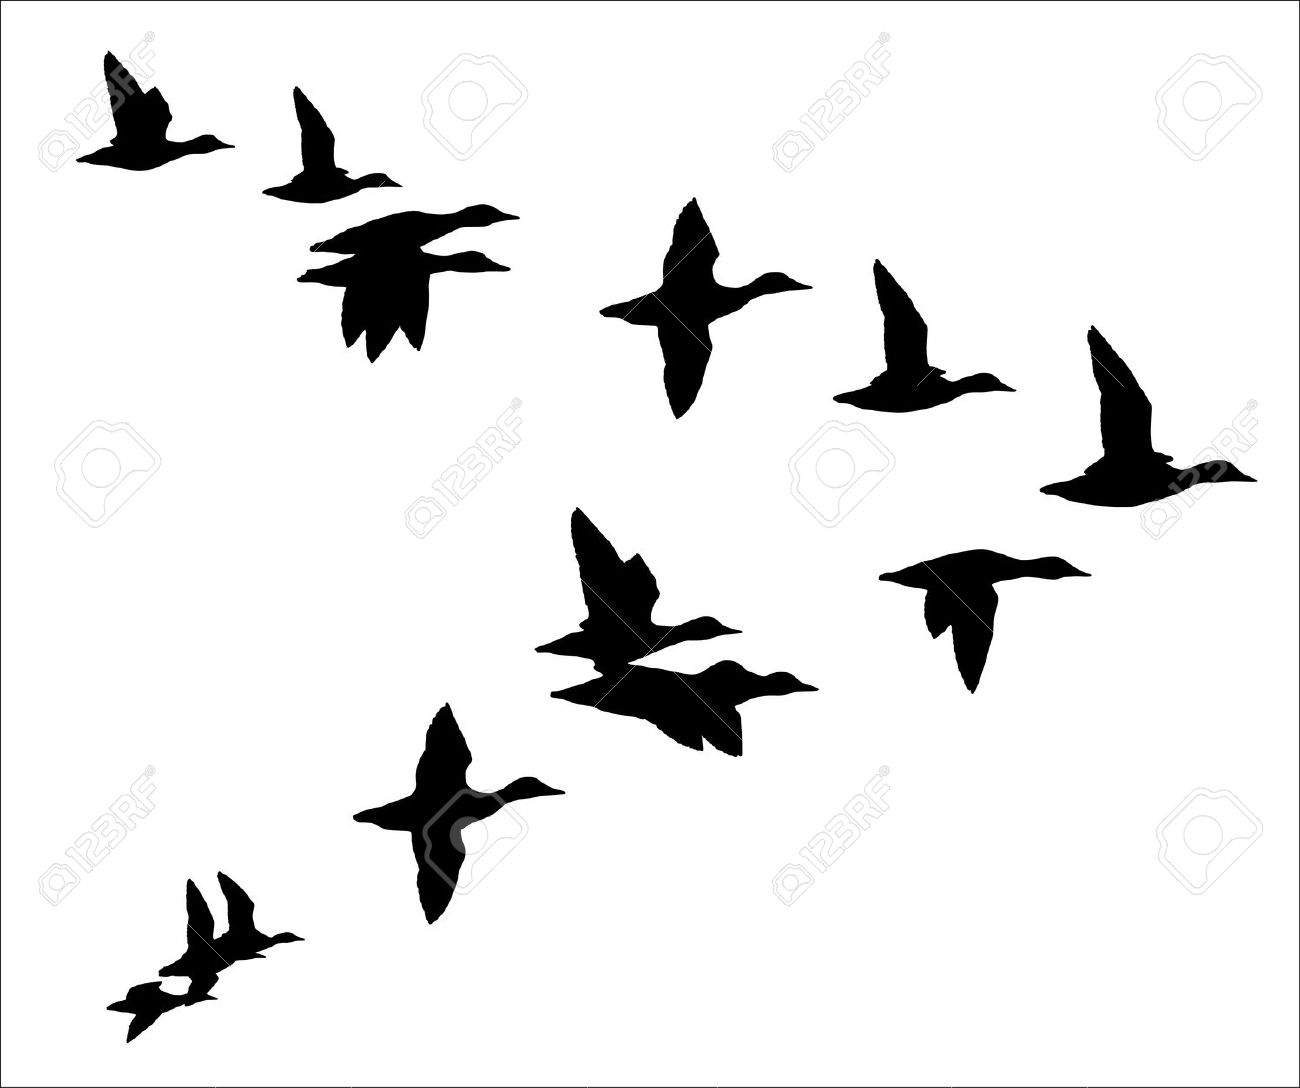 Geese Migration clipart #2, Download drawings